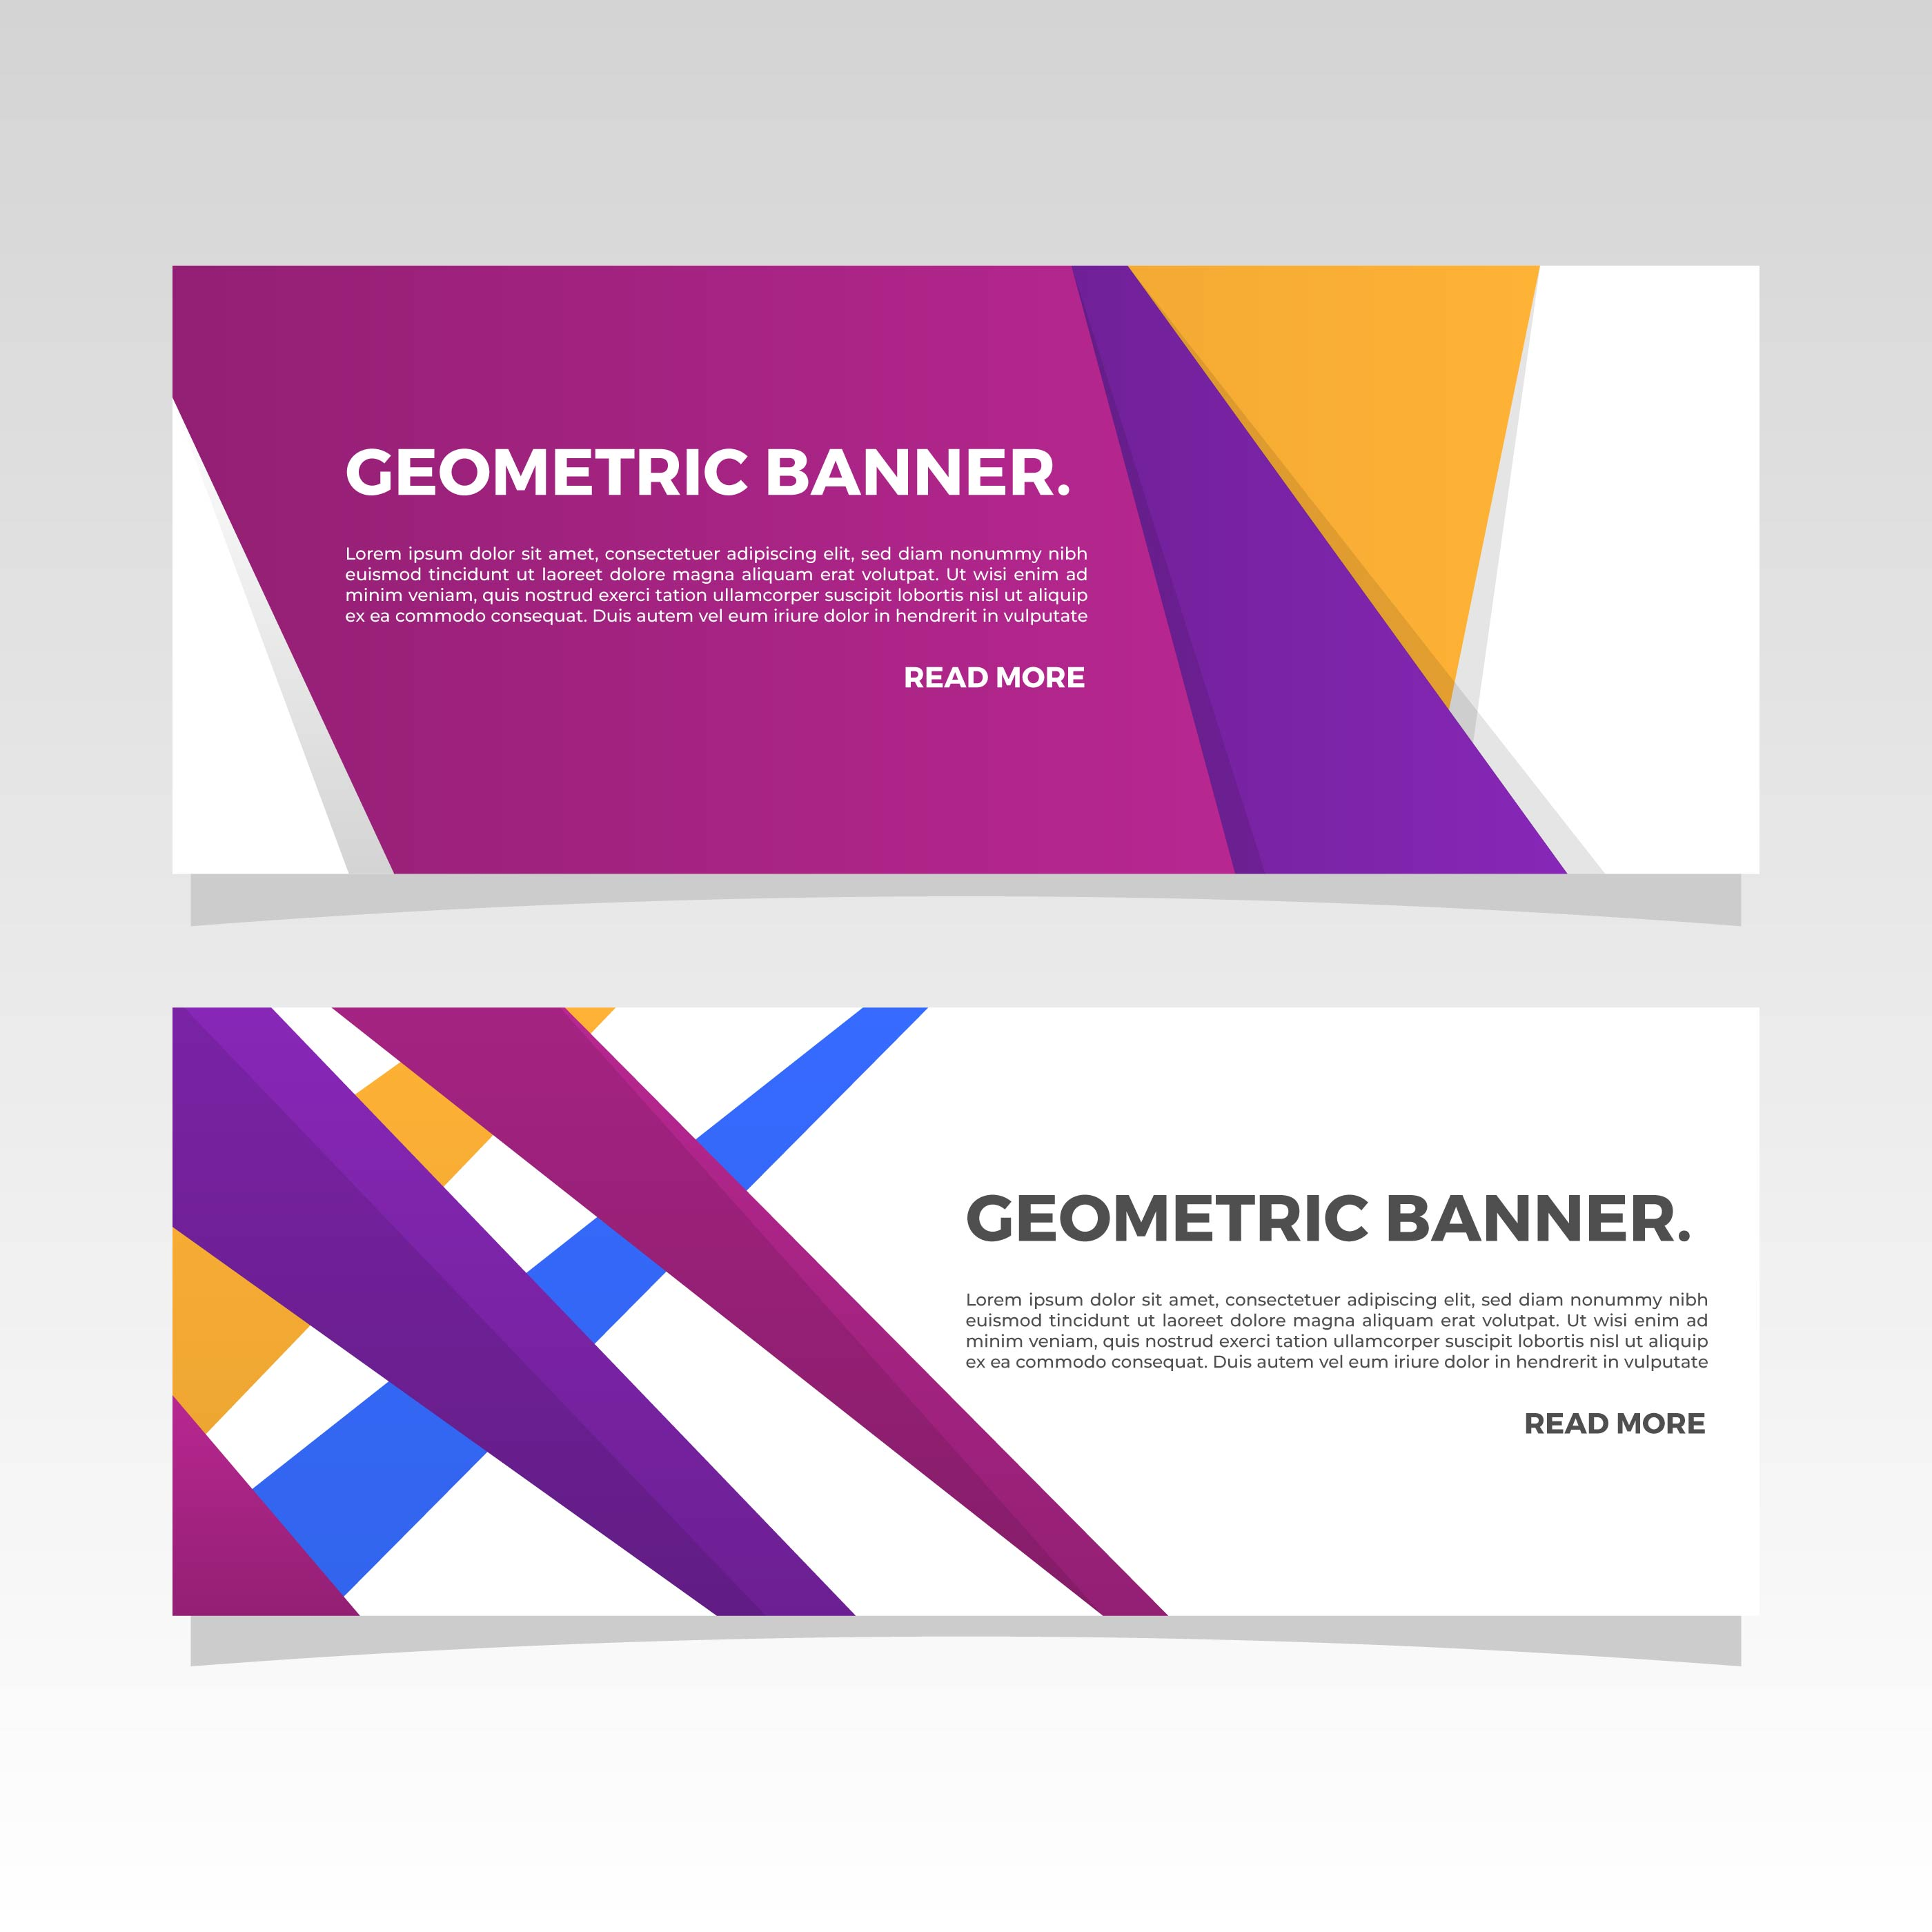 Flat Geometric Banner Vector Template - Download Free ...